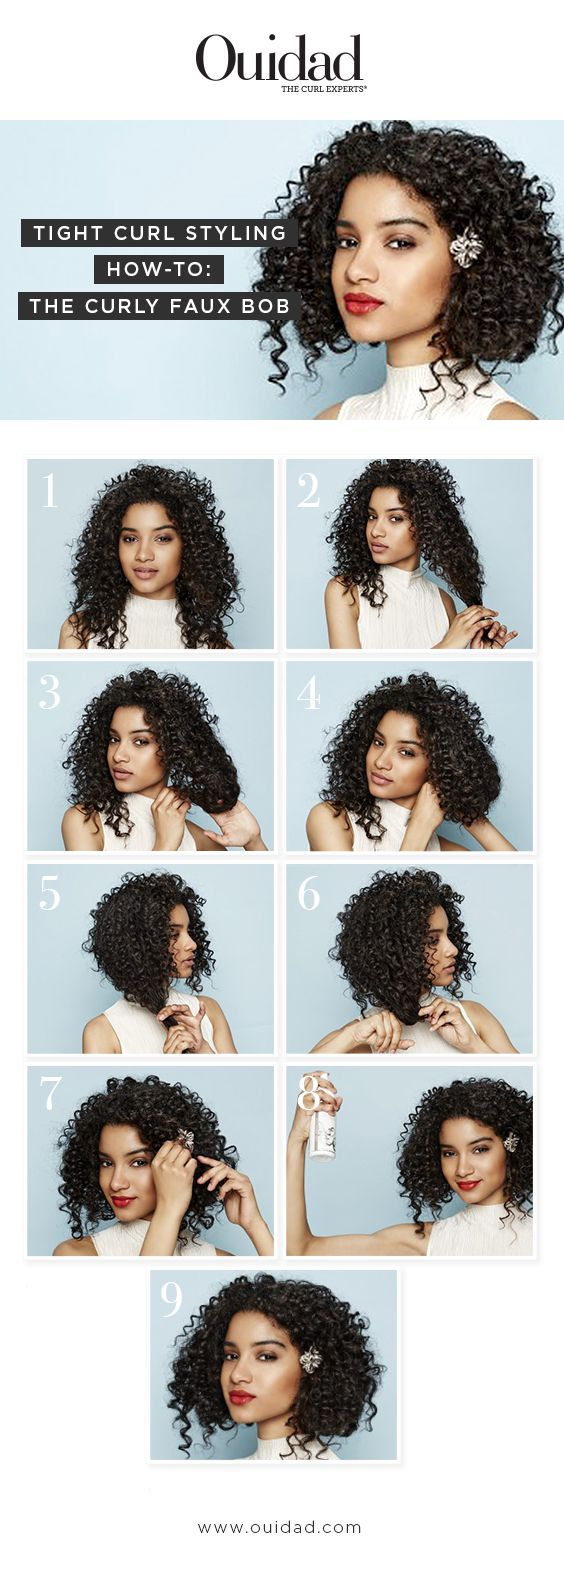 1434 best hair images on pinterest | hairstyles, hair and make up